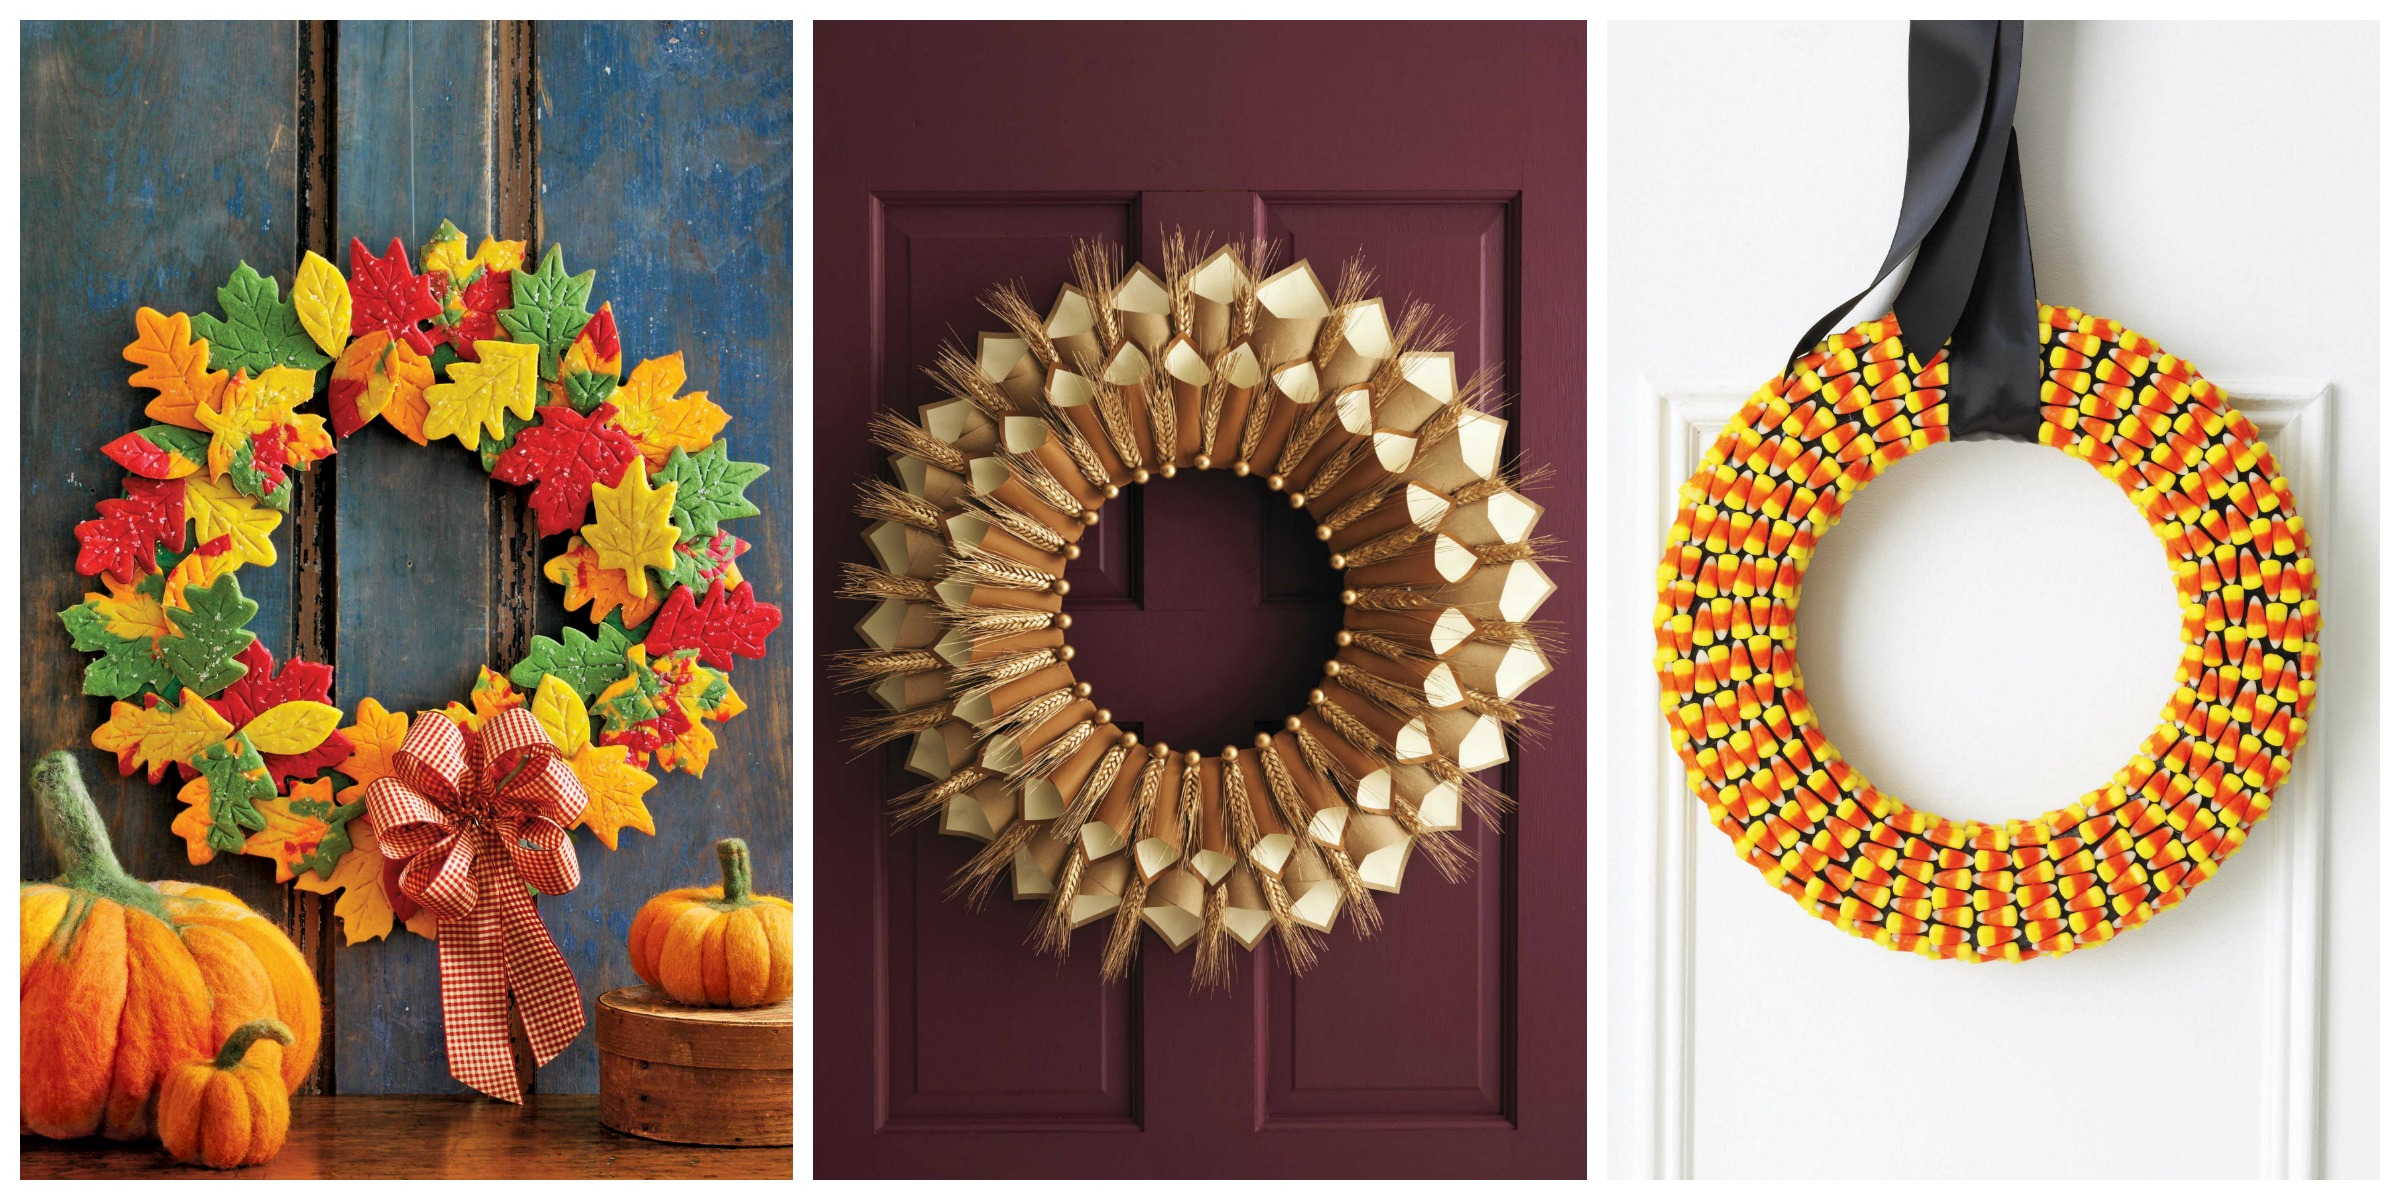 20 diy fall wreaths easy ideas for autumn wreaths Fall autumn door wreaths